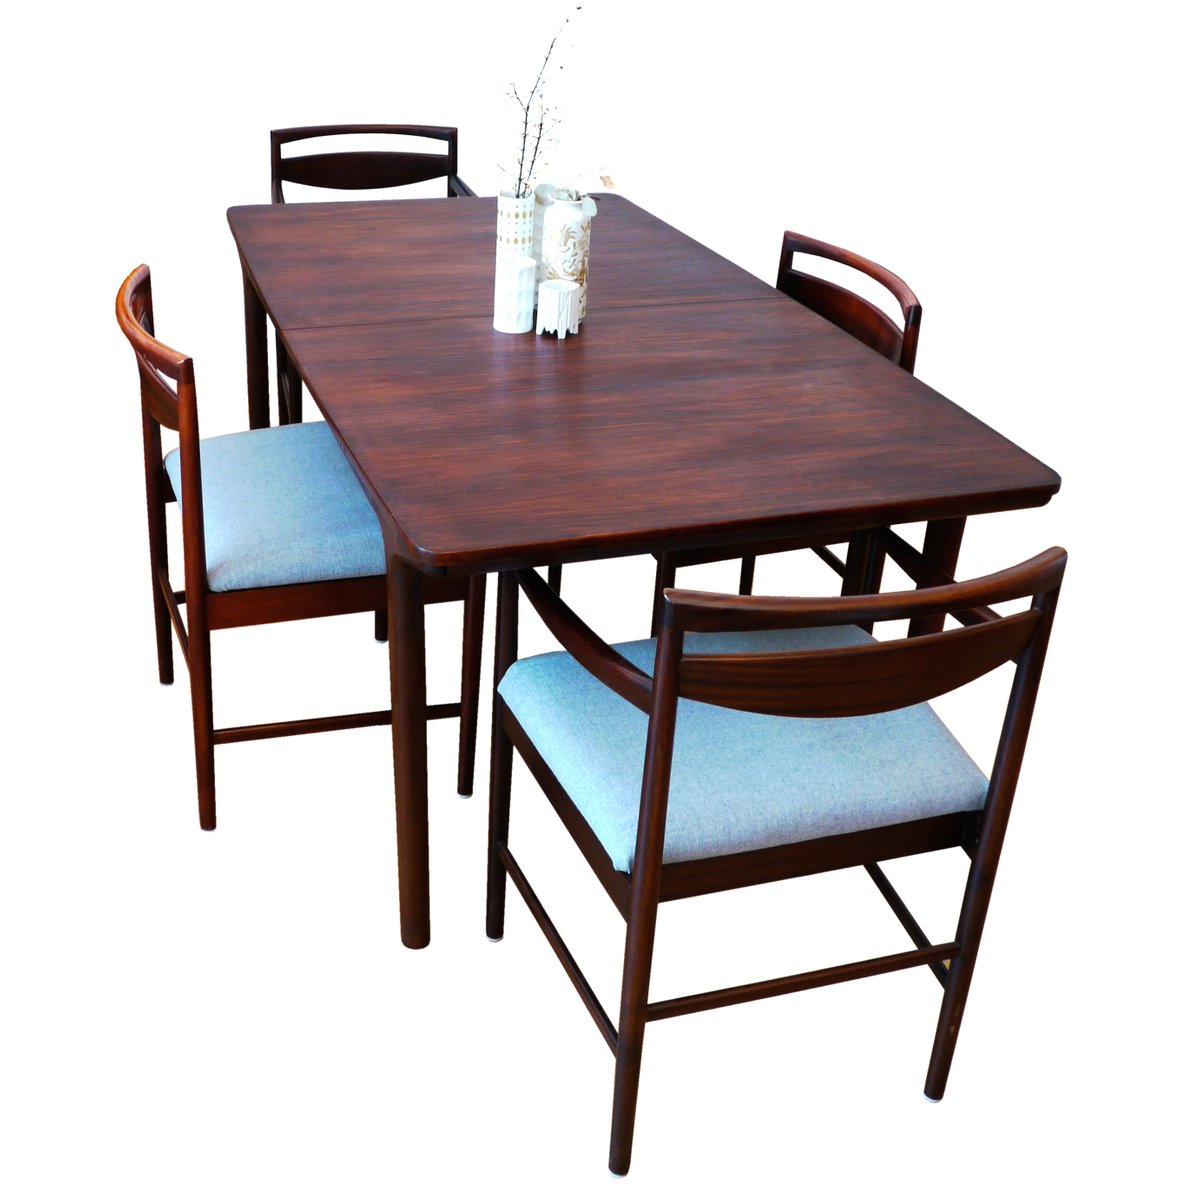 Large Mid Century 12 Seater Rosewood Dining Table By Tom Robertson For McIntosh Sale At Pamono